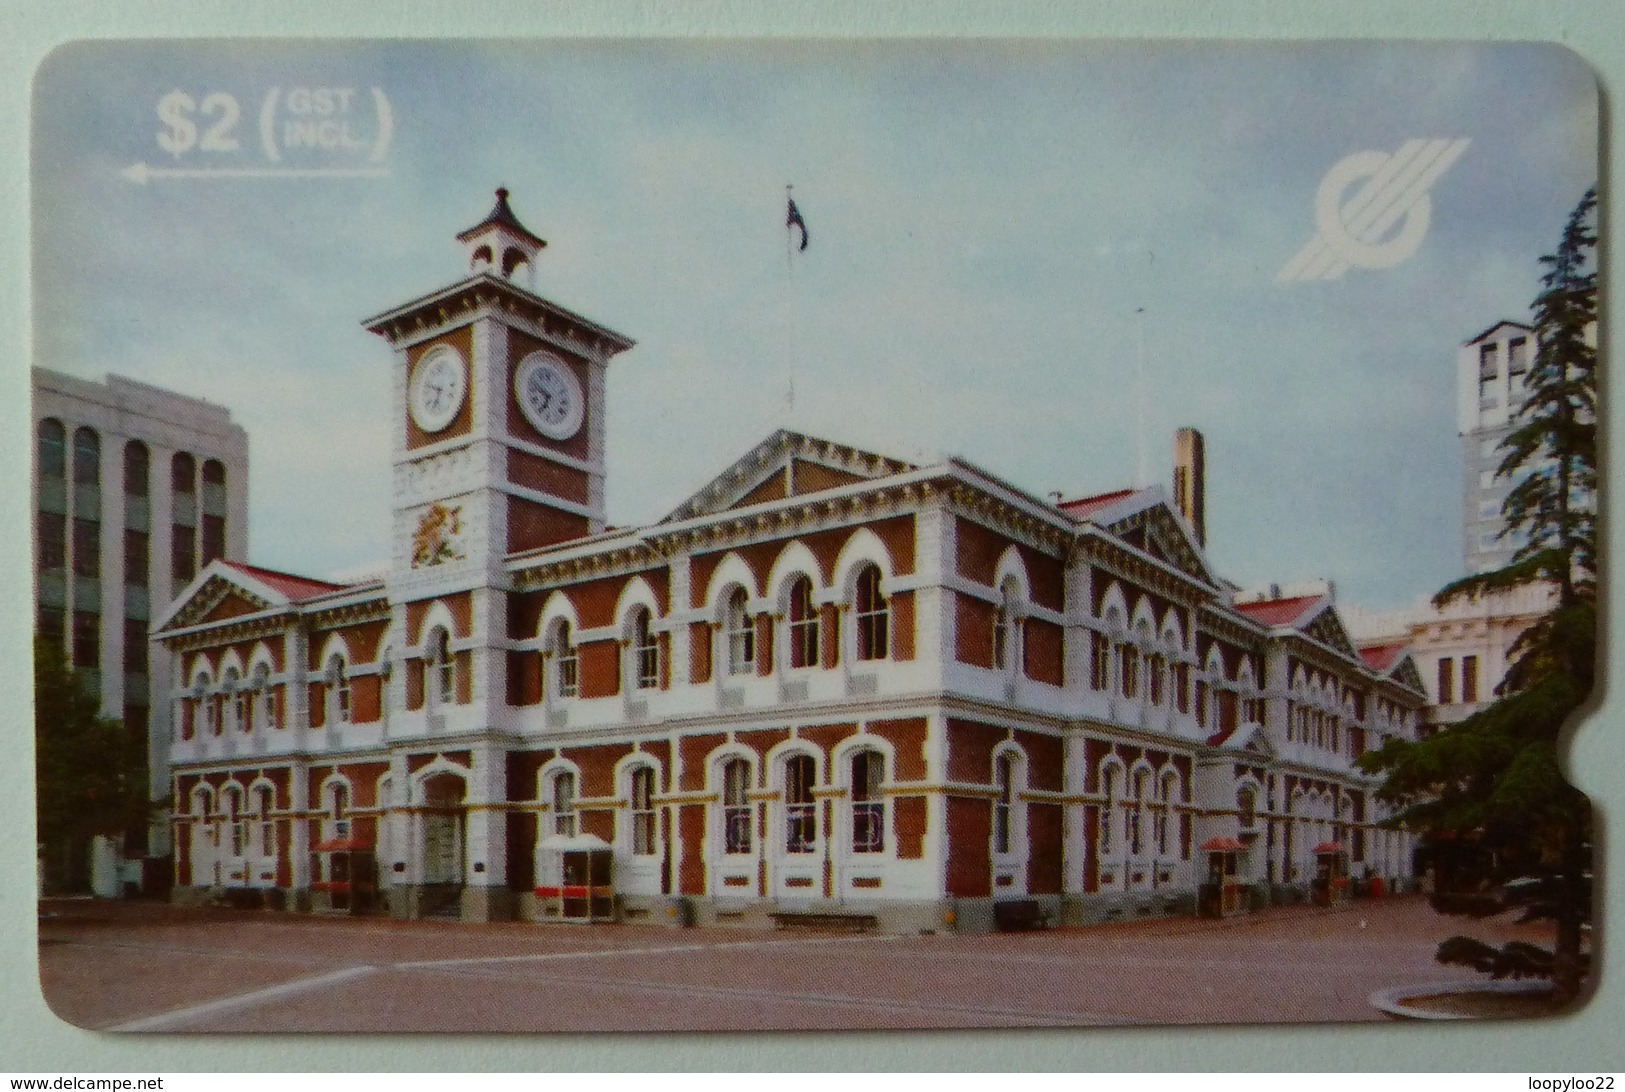 NEW ZEALAND - GPT - NZ-G-1 - Chief Post Office, Christchurch - 1989 Trial Issue - $2 - Used - New Zealand